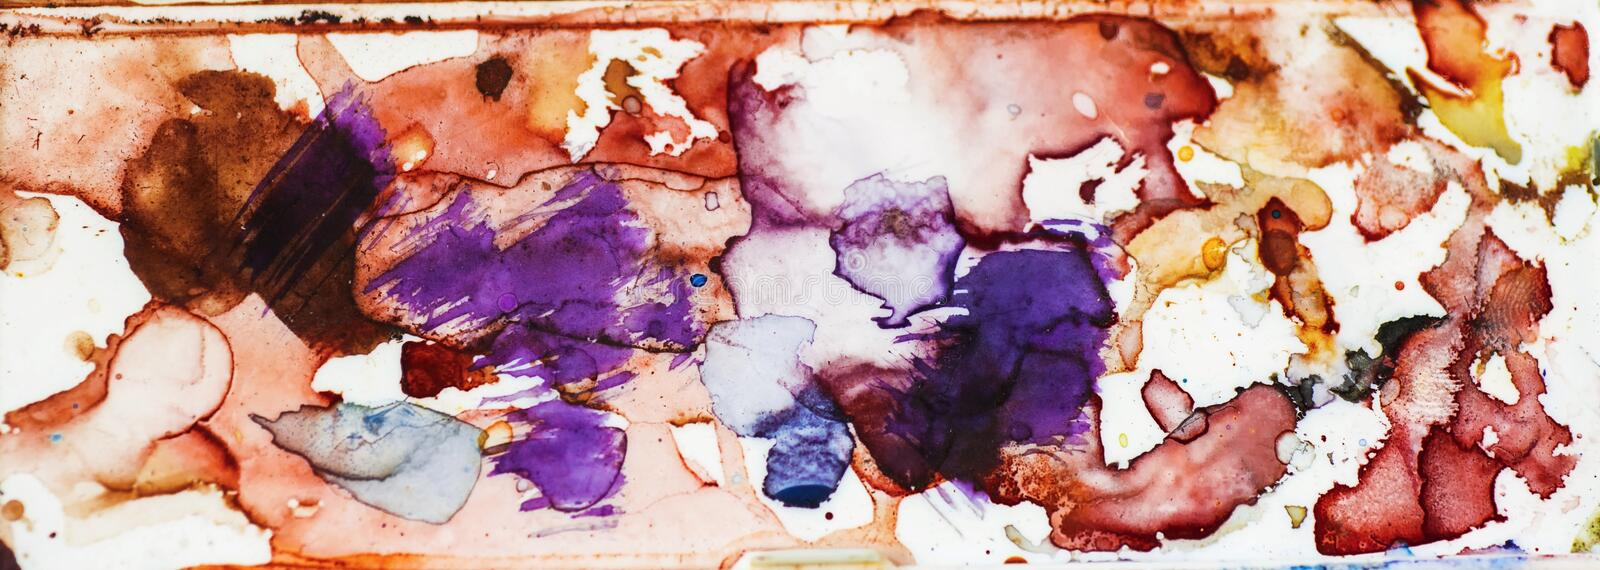 Abstract watercolor stain smudge. royalty free stock photos